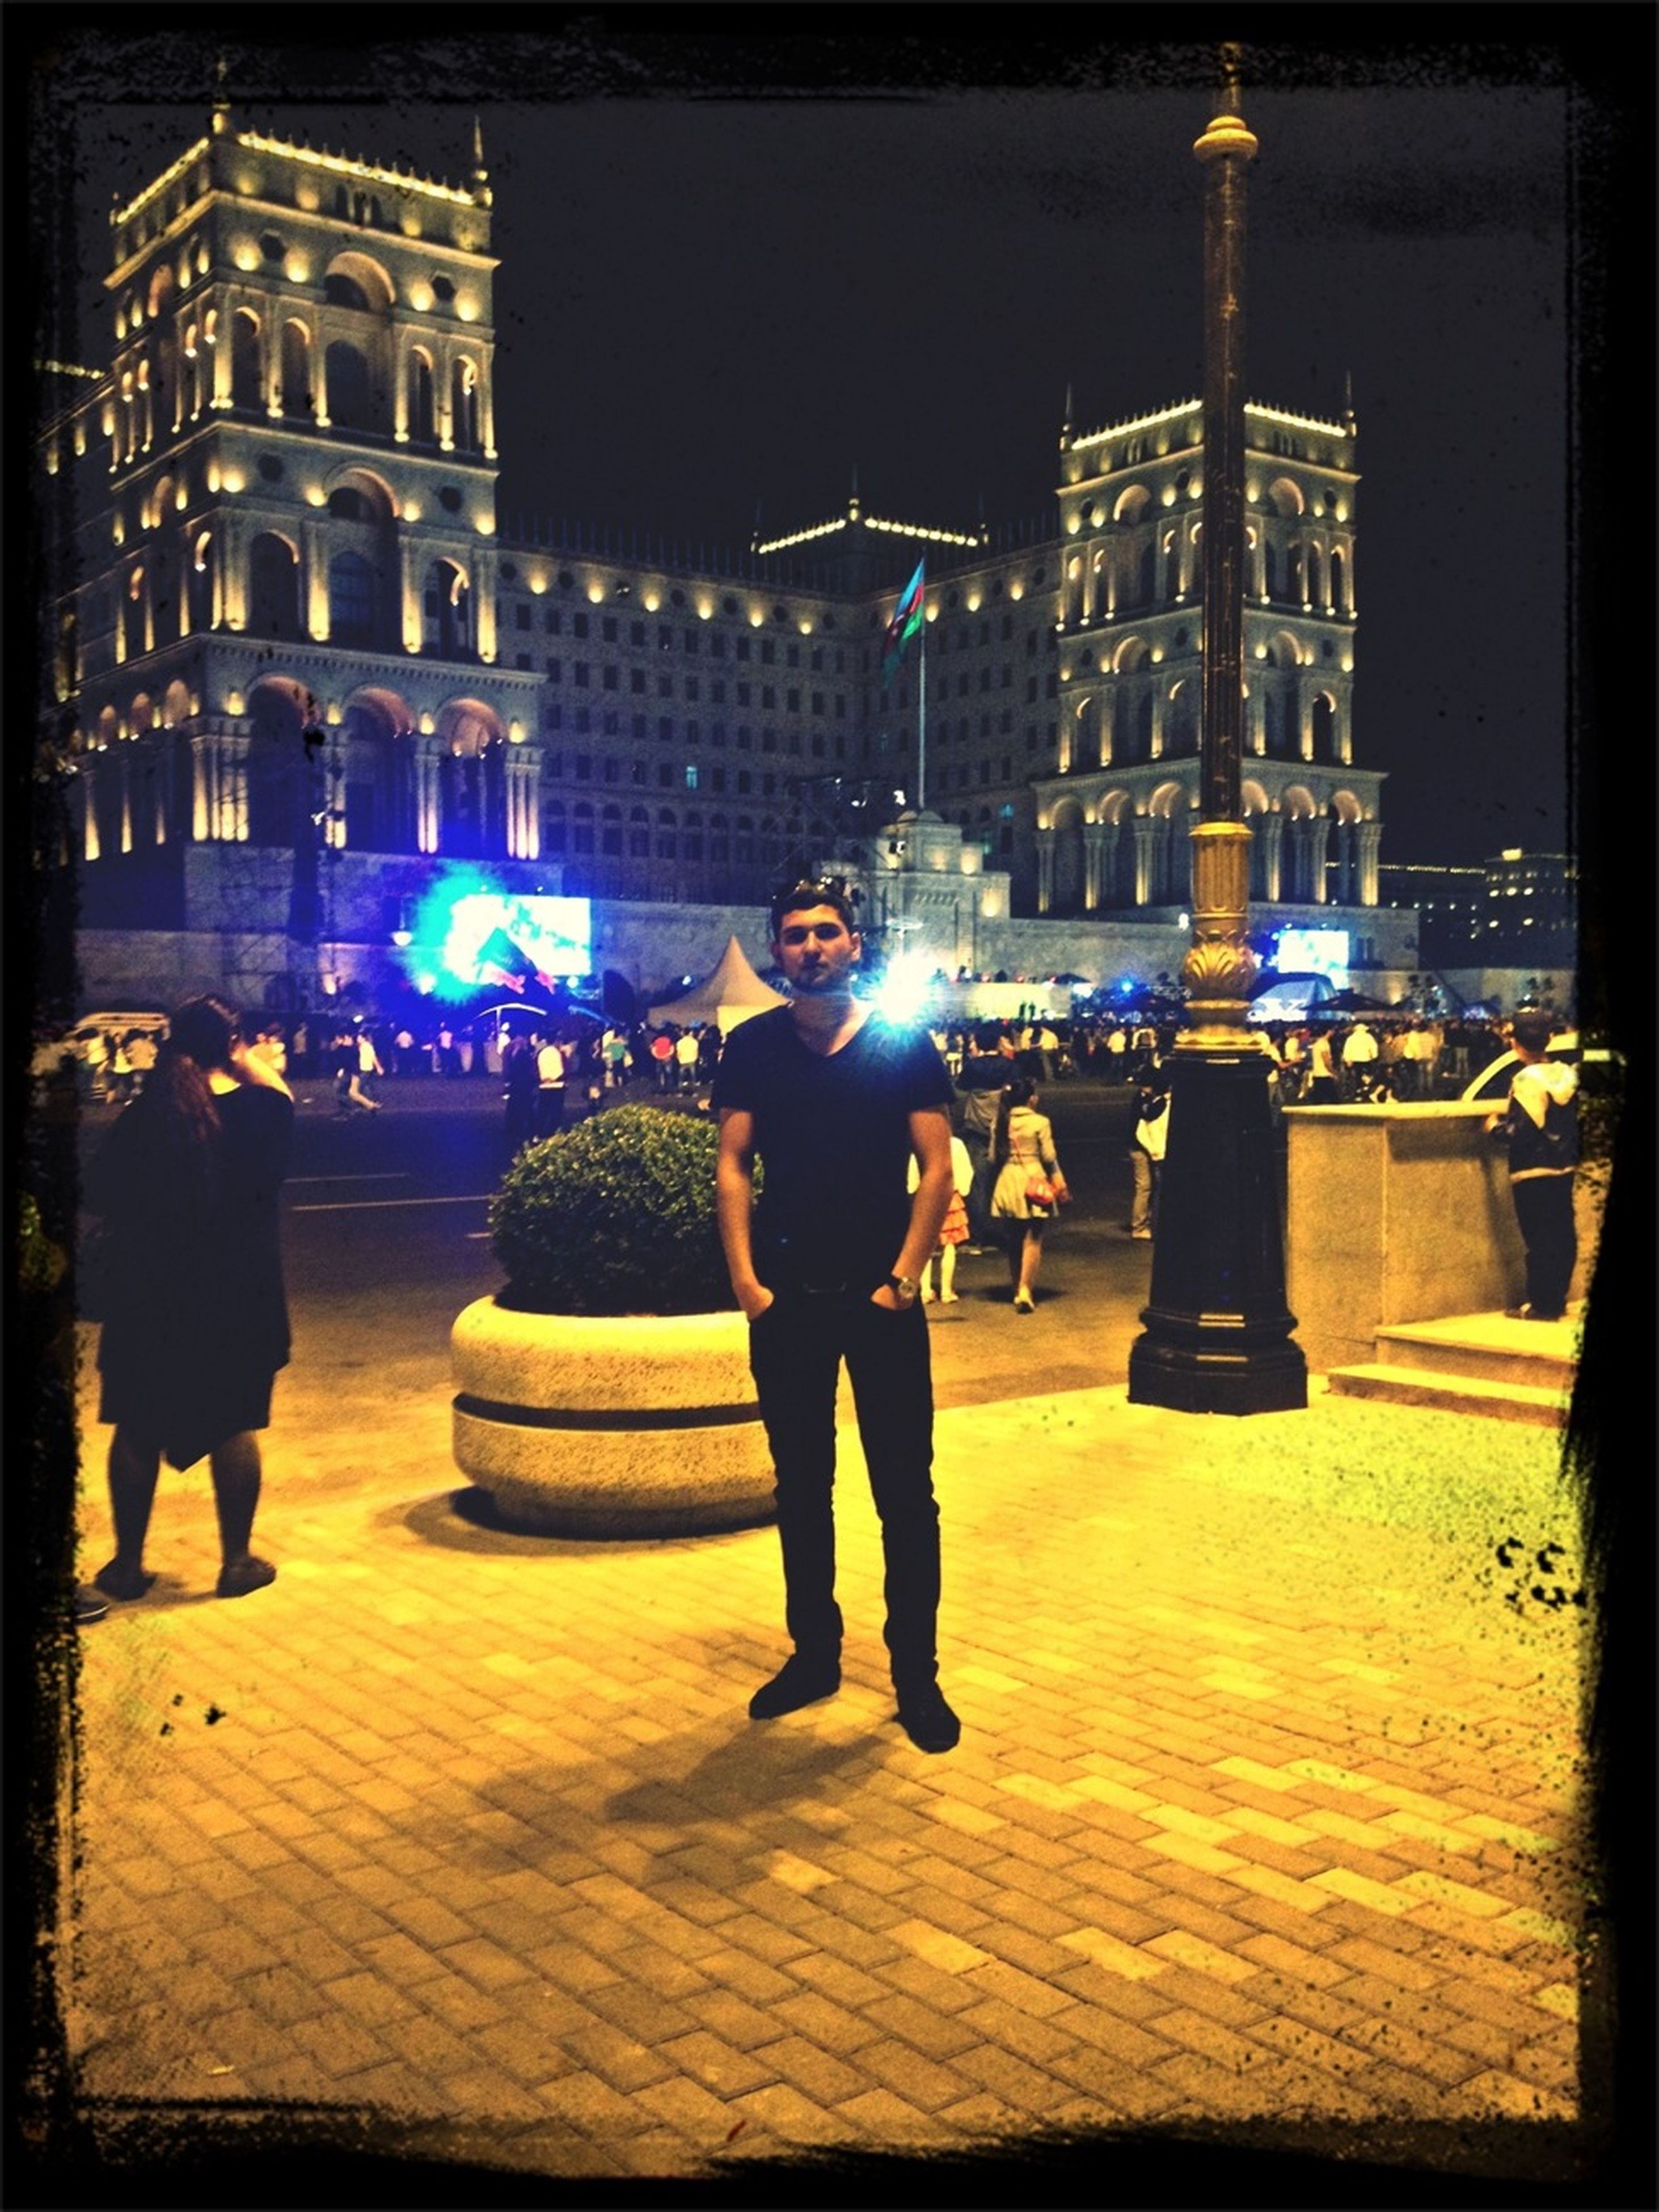 illuminated, building exterior, night, lifestyles, architecture, built structure, leisure activity, city, men, transfer print, city life, full length, casual clothing, person, street, auto post production filter, standing, walking, rear view